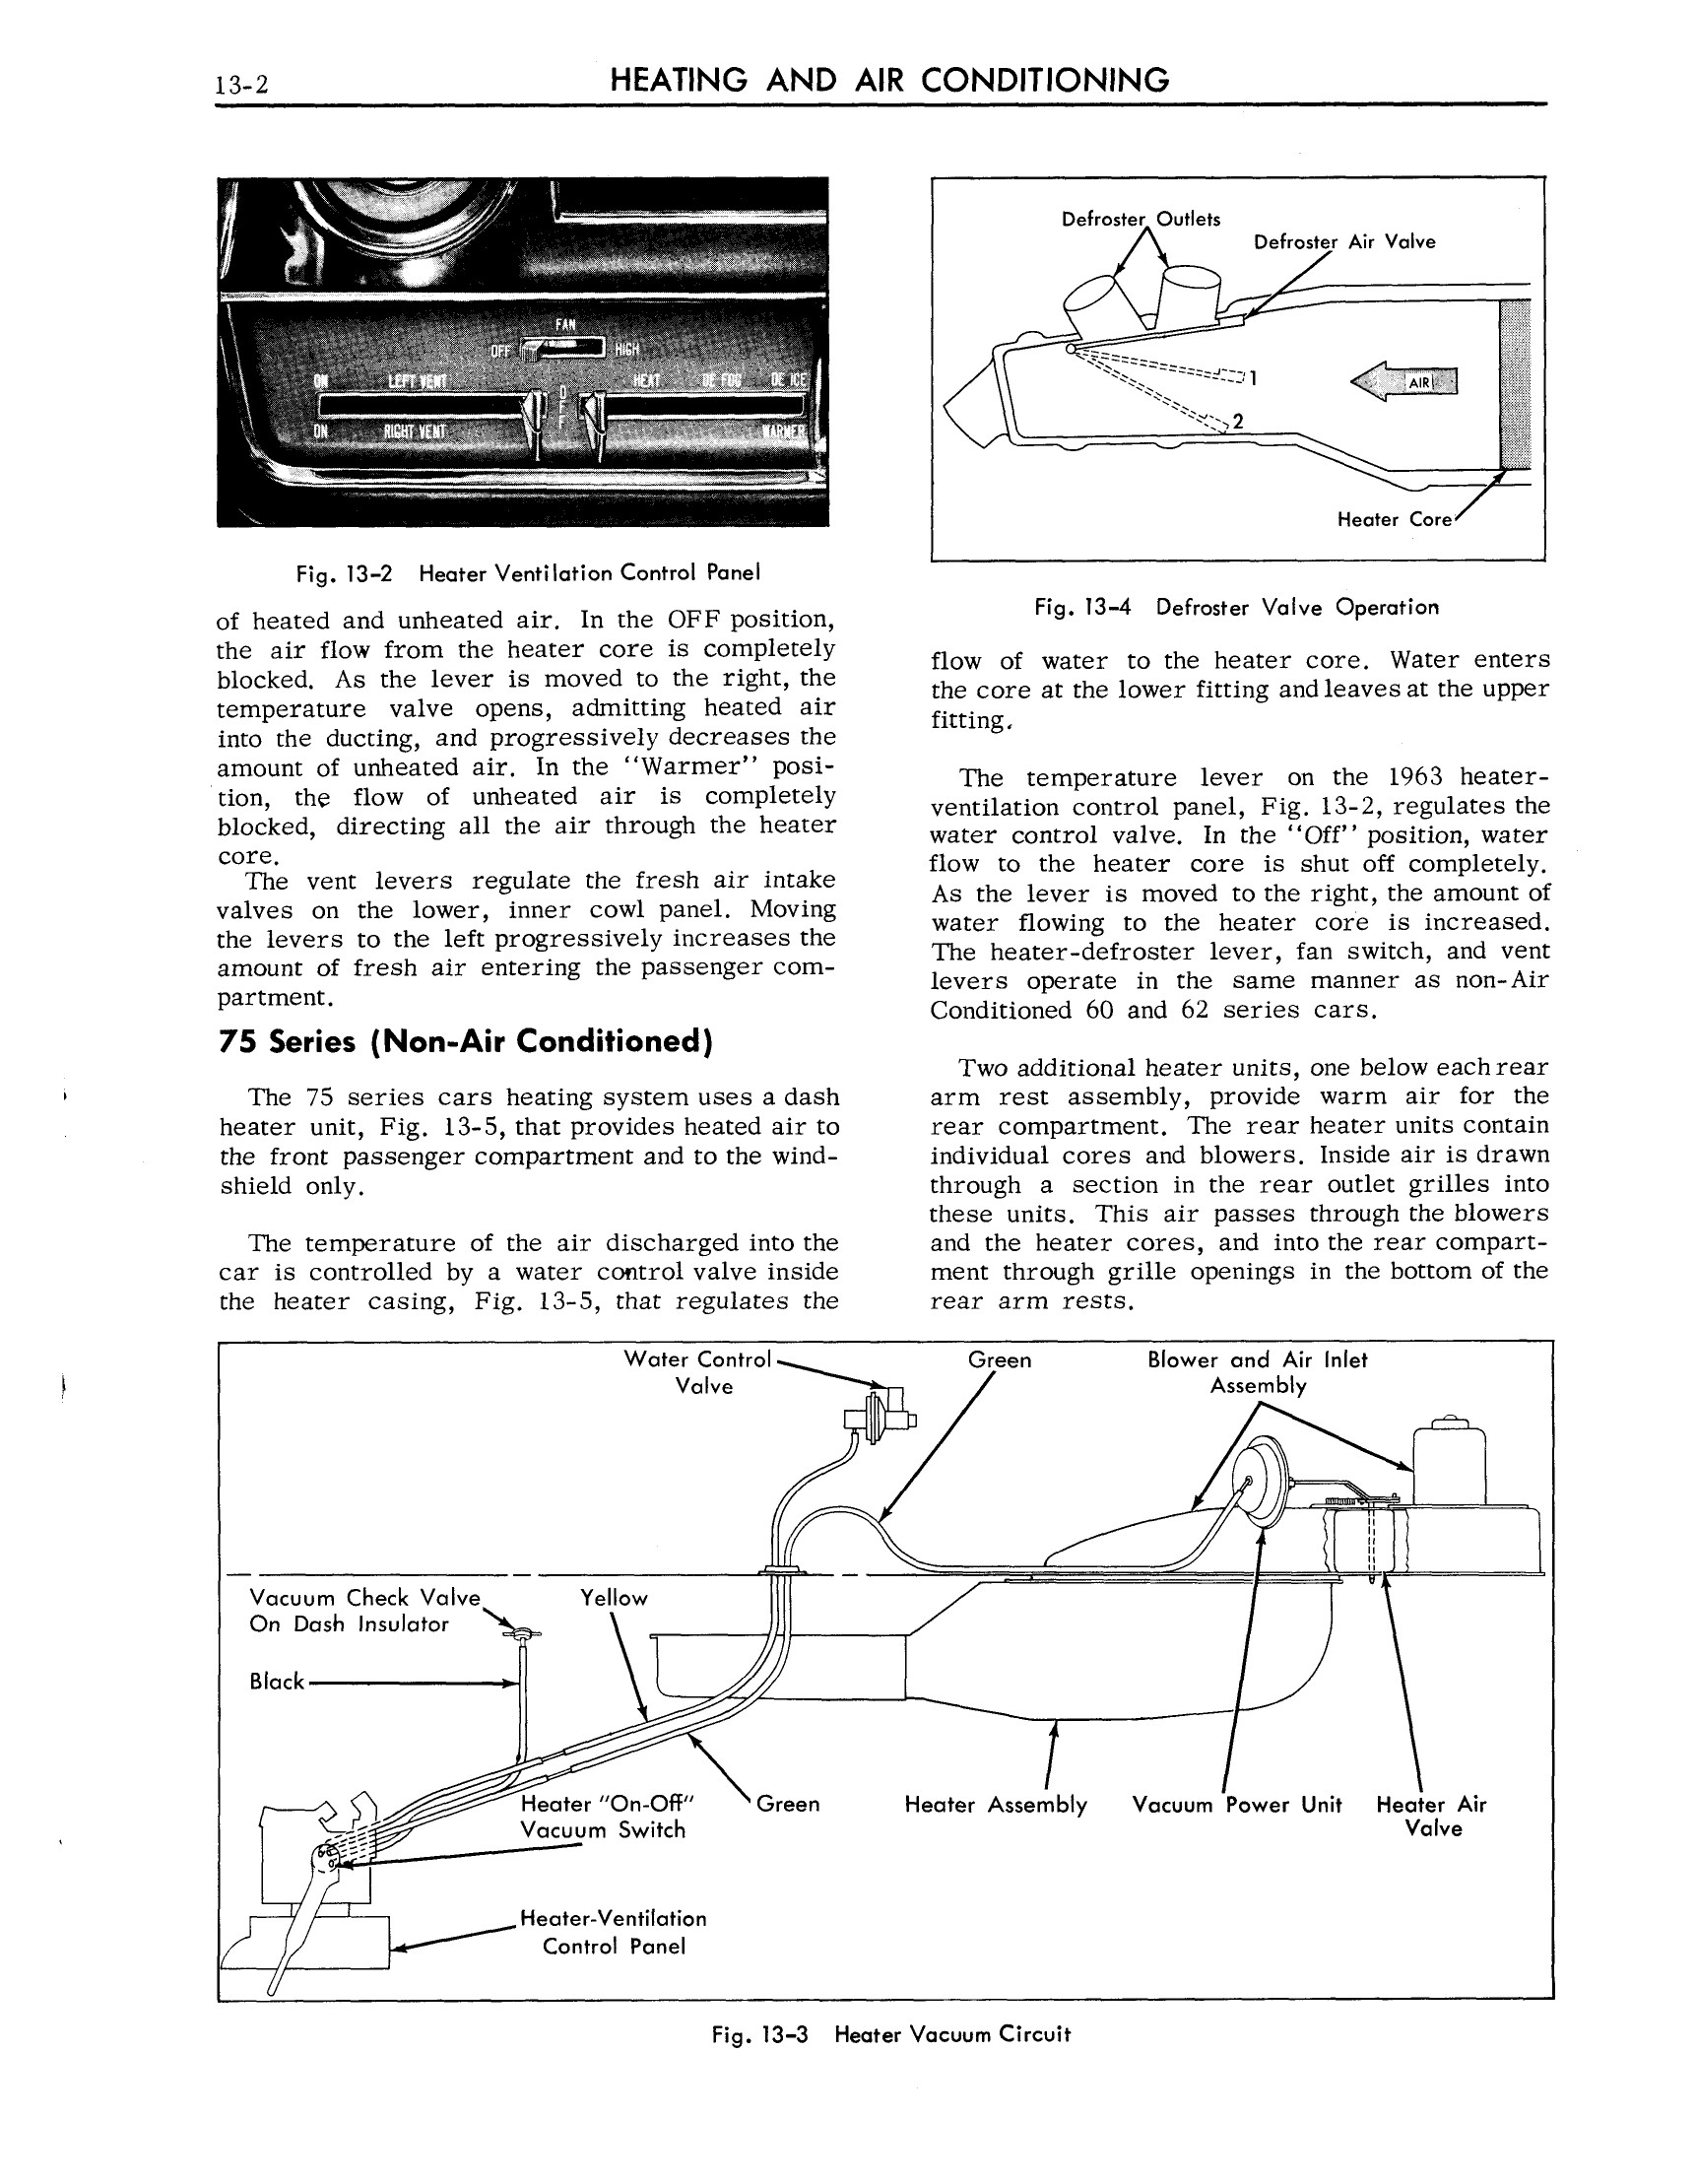 1963 Cadillac Shop Manual- Heat and AC Page 2 of 68